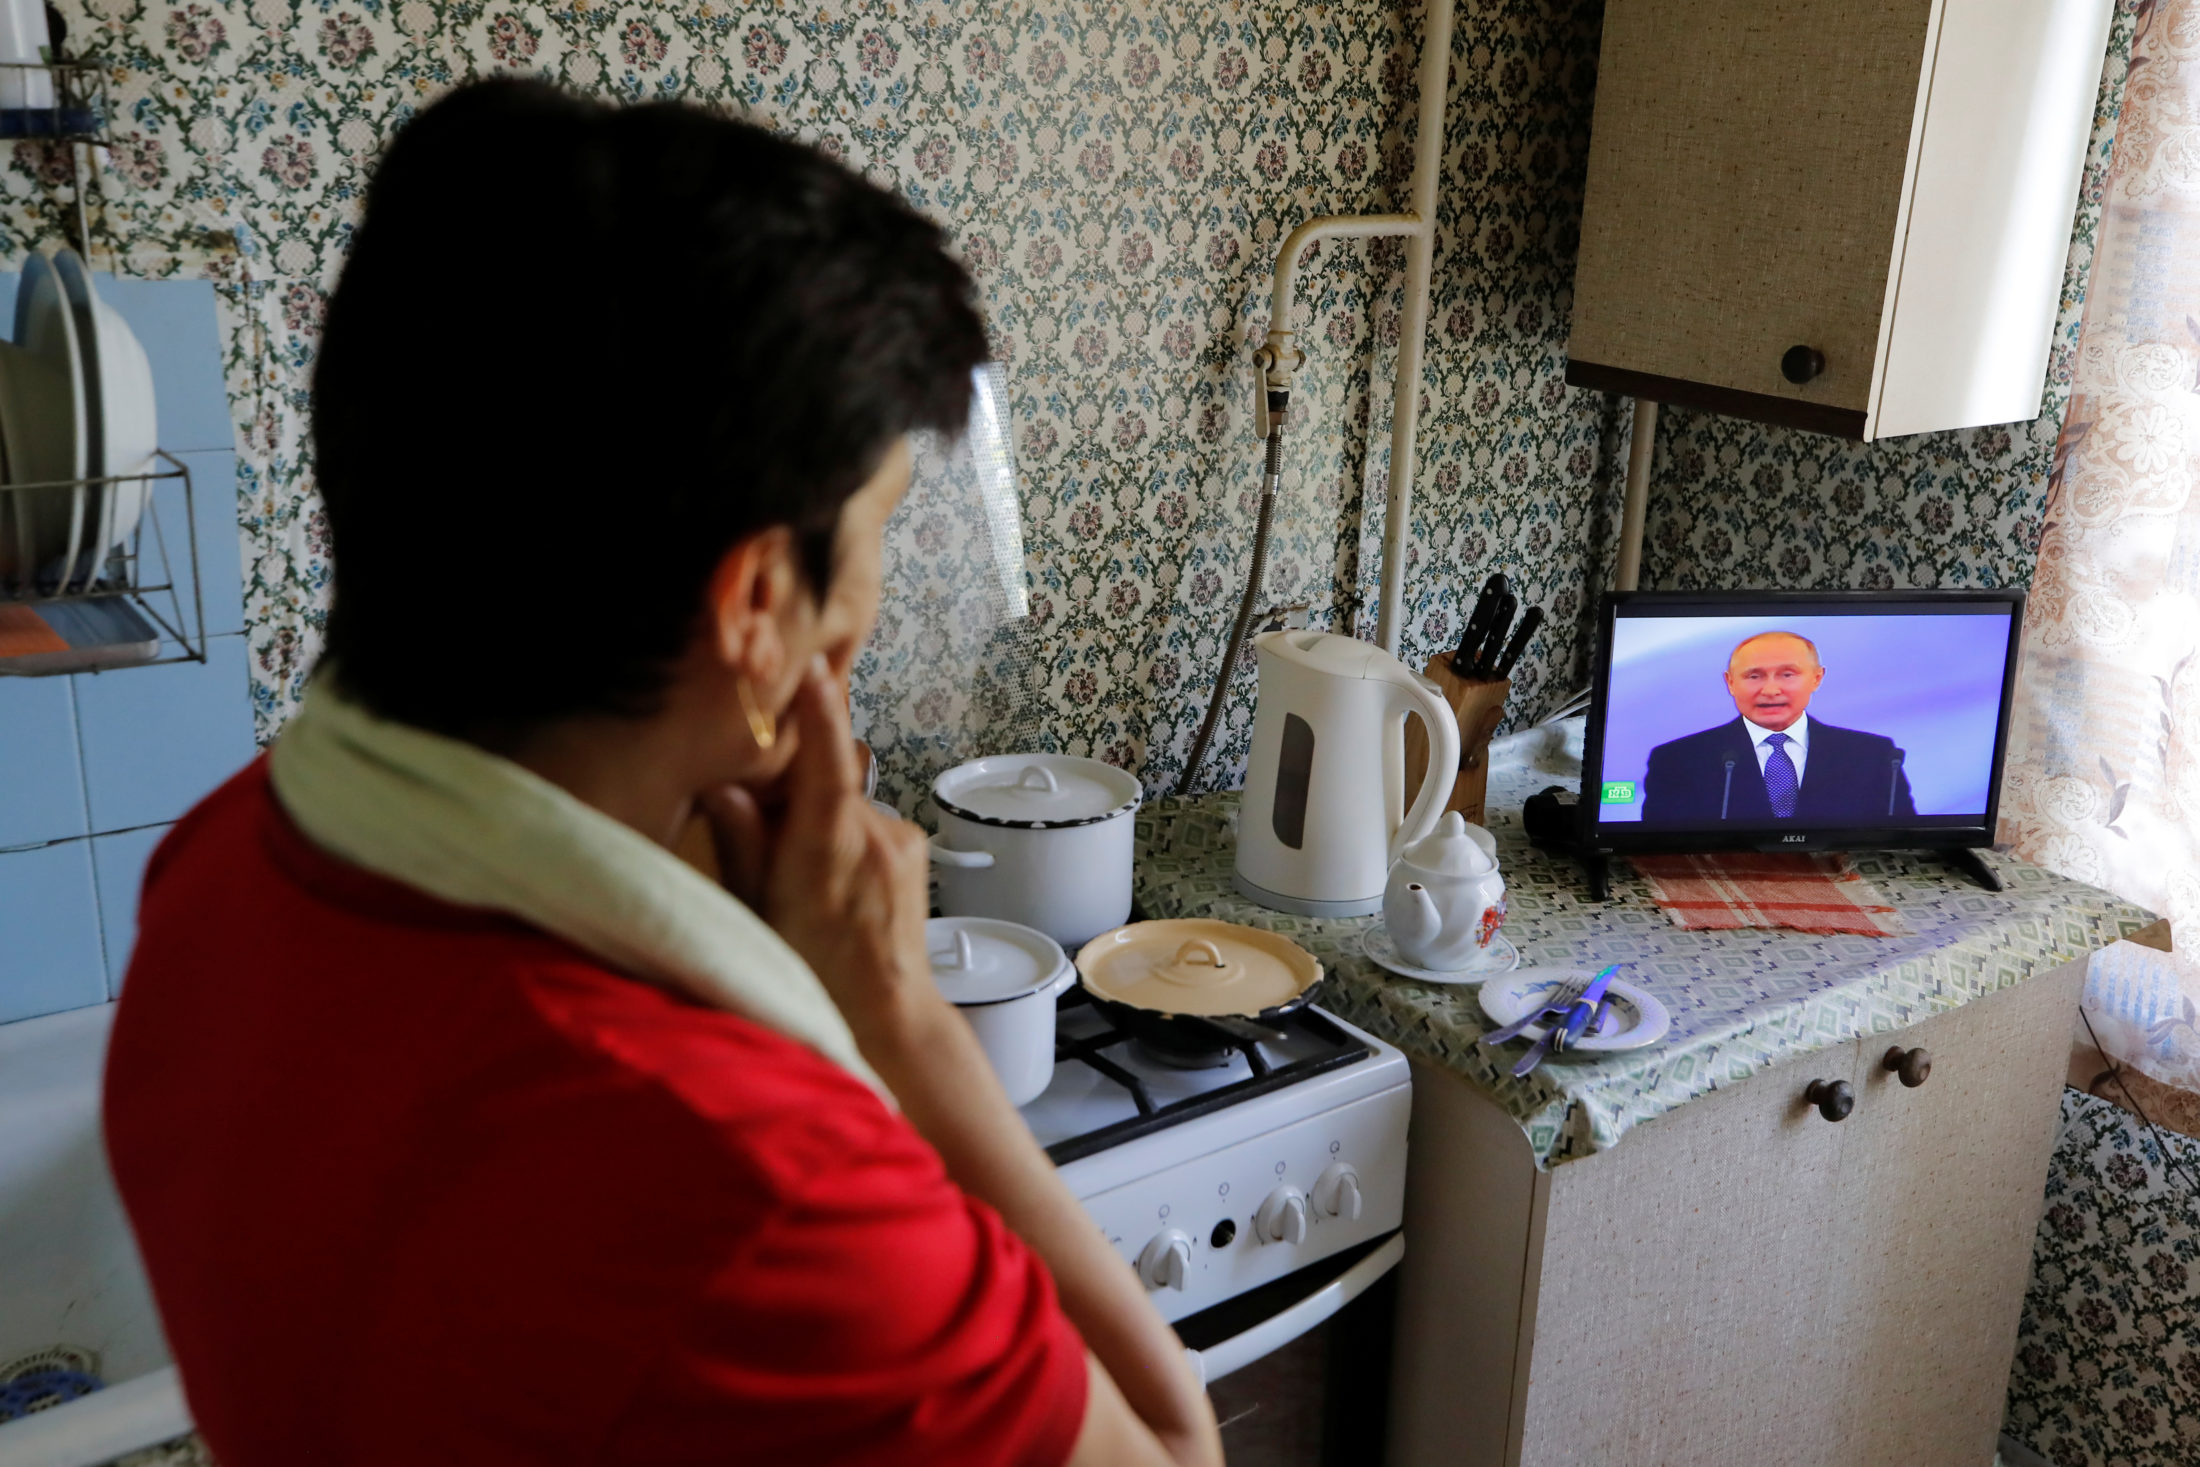 A woman watches a ceremony to inaugurate Vladimir Putin as President of Russia while cooking a meal inside an apartment in Moscow, Russia. Photo by Maxim Shemetov/Reuters